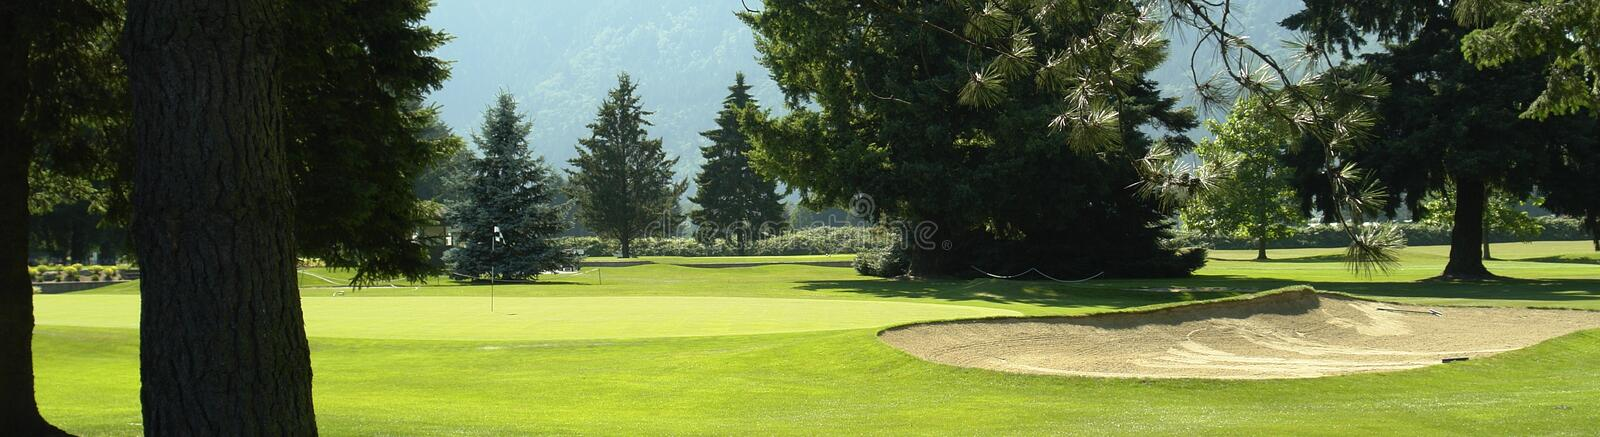 Download Golf Course Green Sand Trap Stock Image - Image: 5862745